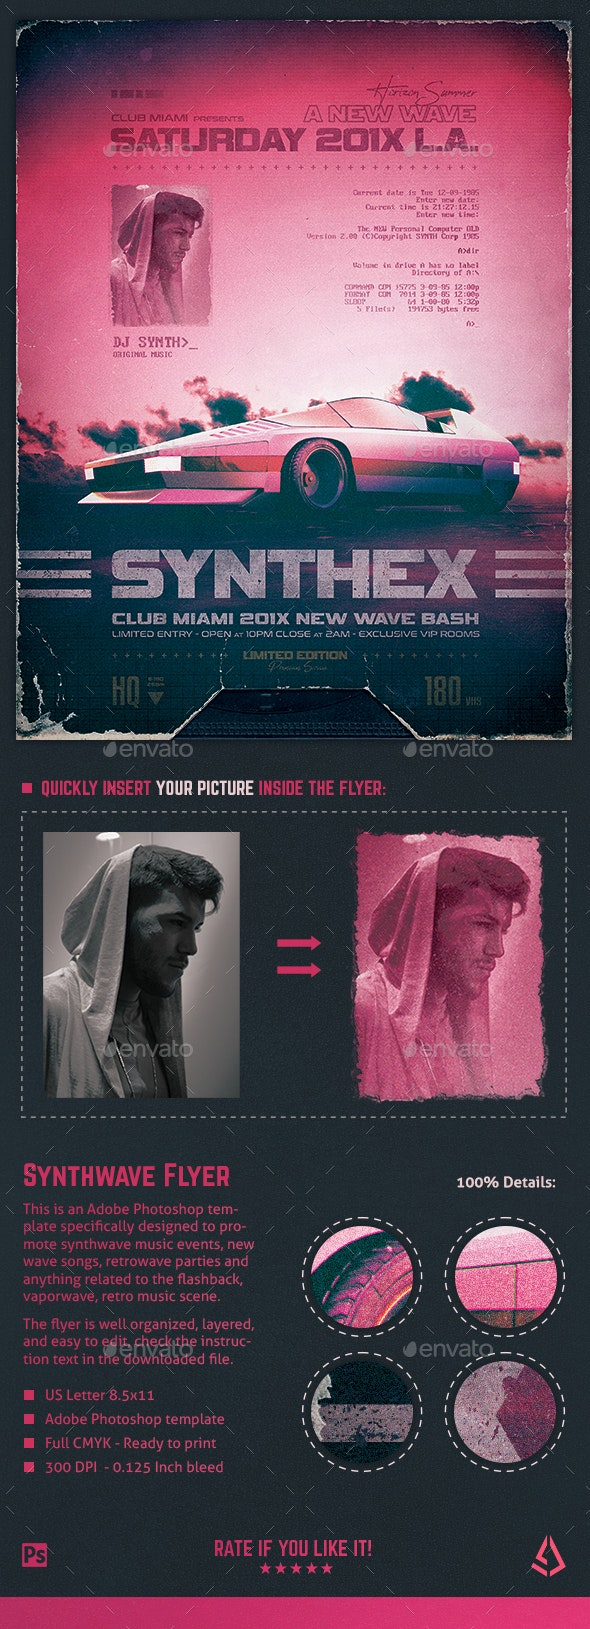 Synthwave Flyer v10 80s Retro Wave Poster Template - Clubs & Parties Events